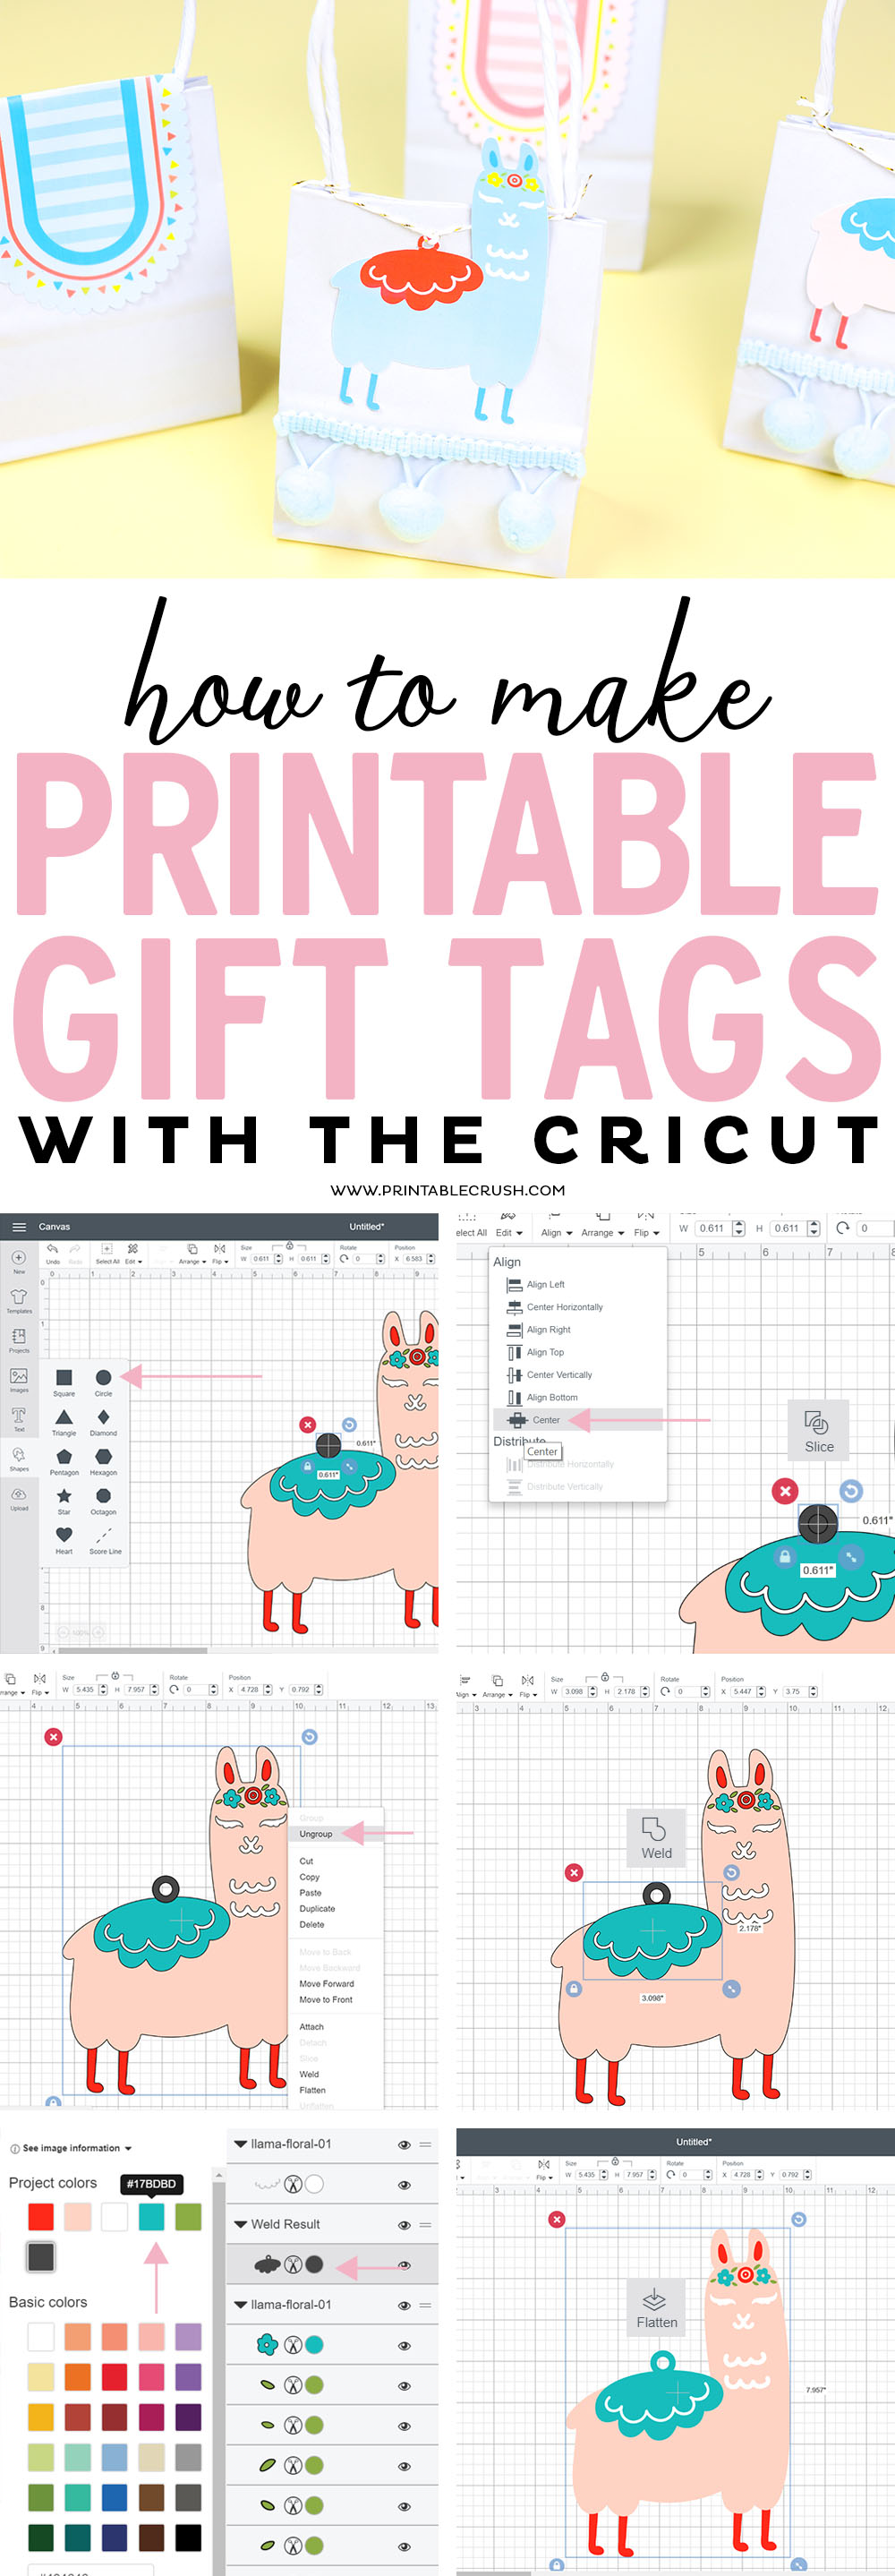 These adorable Llama gift tags were easy to create, and I'm showing you how you can make Printable Gift Tags with the Cricut using these SVG Files! #svgfiles #llama #fiesta #cricuttutorial #cricutmade #cricutdesignspace